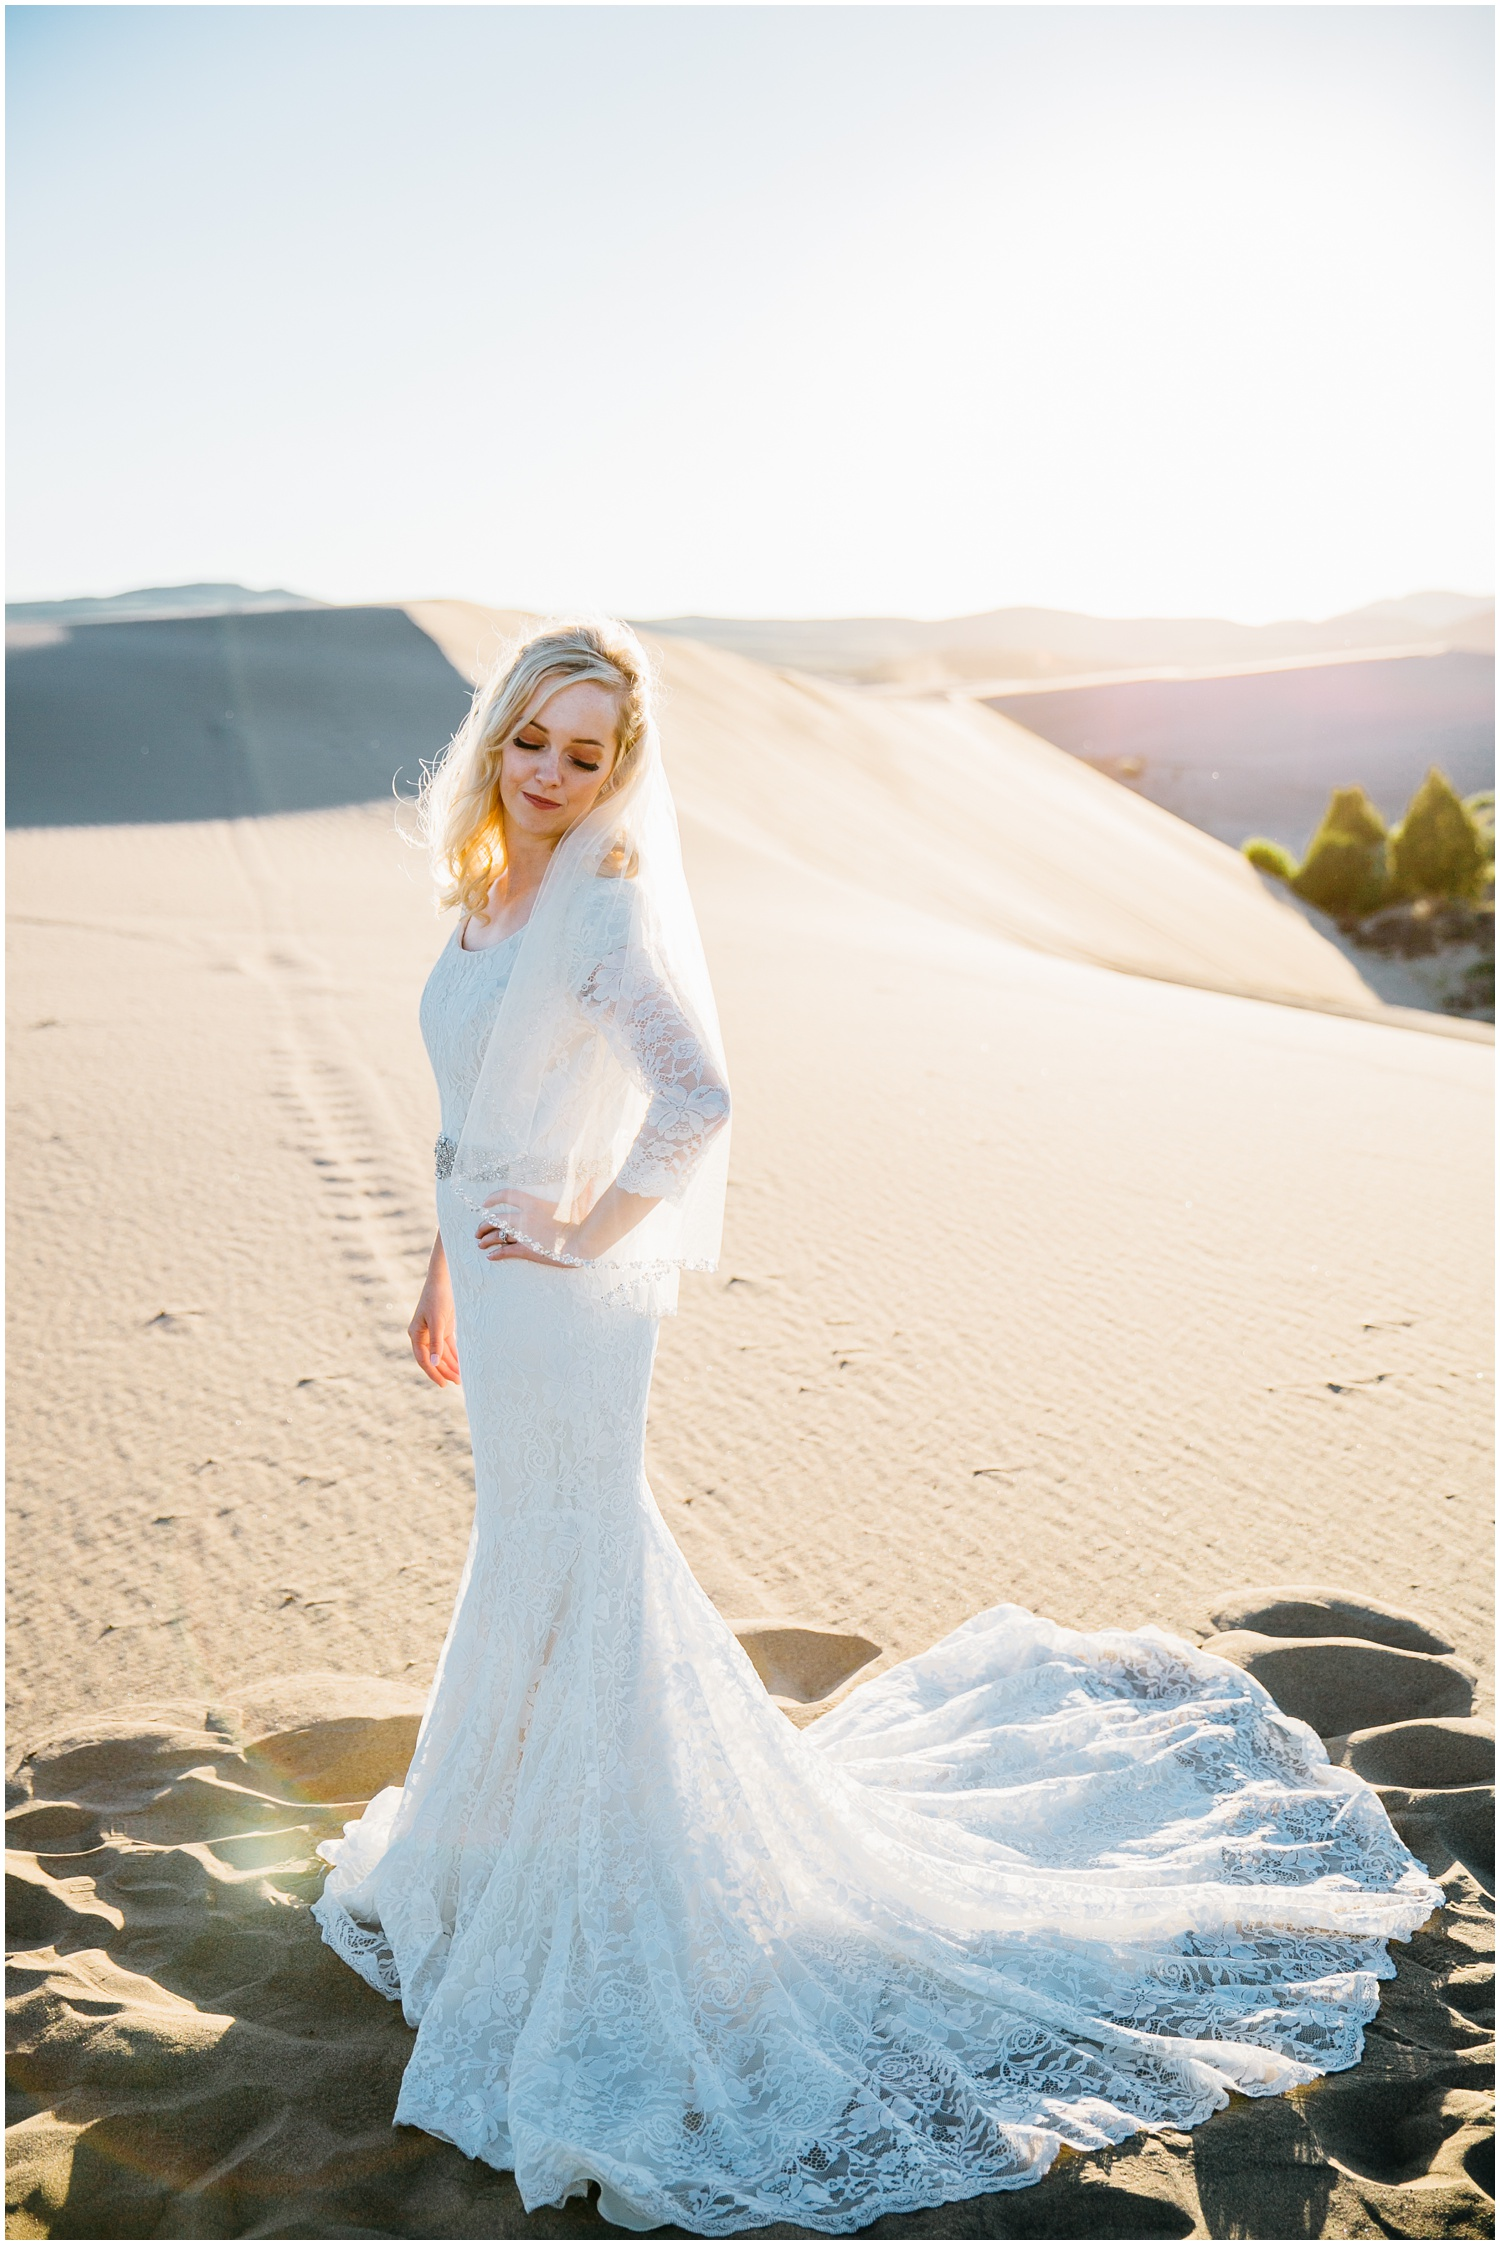 saint-anthony-sand-dunes-bridals-idaho-engagements-colorado-wyoming-wedding-photographer_0734.jpg